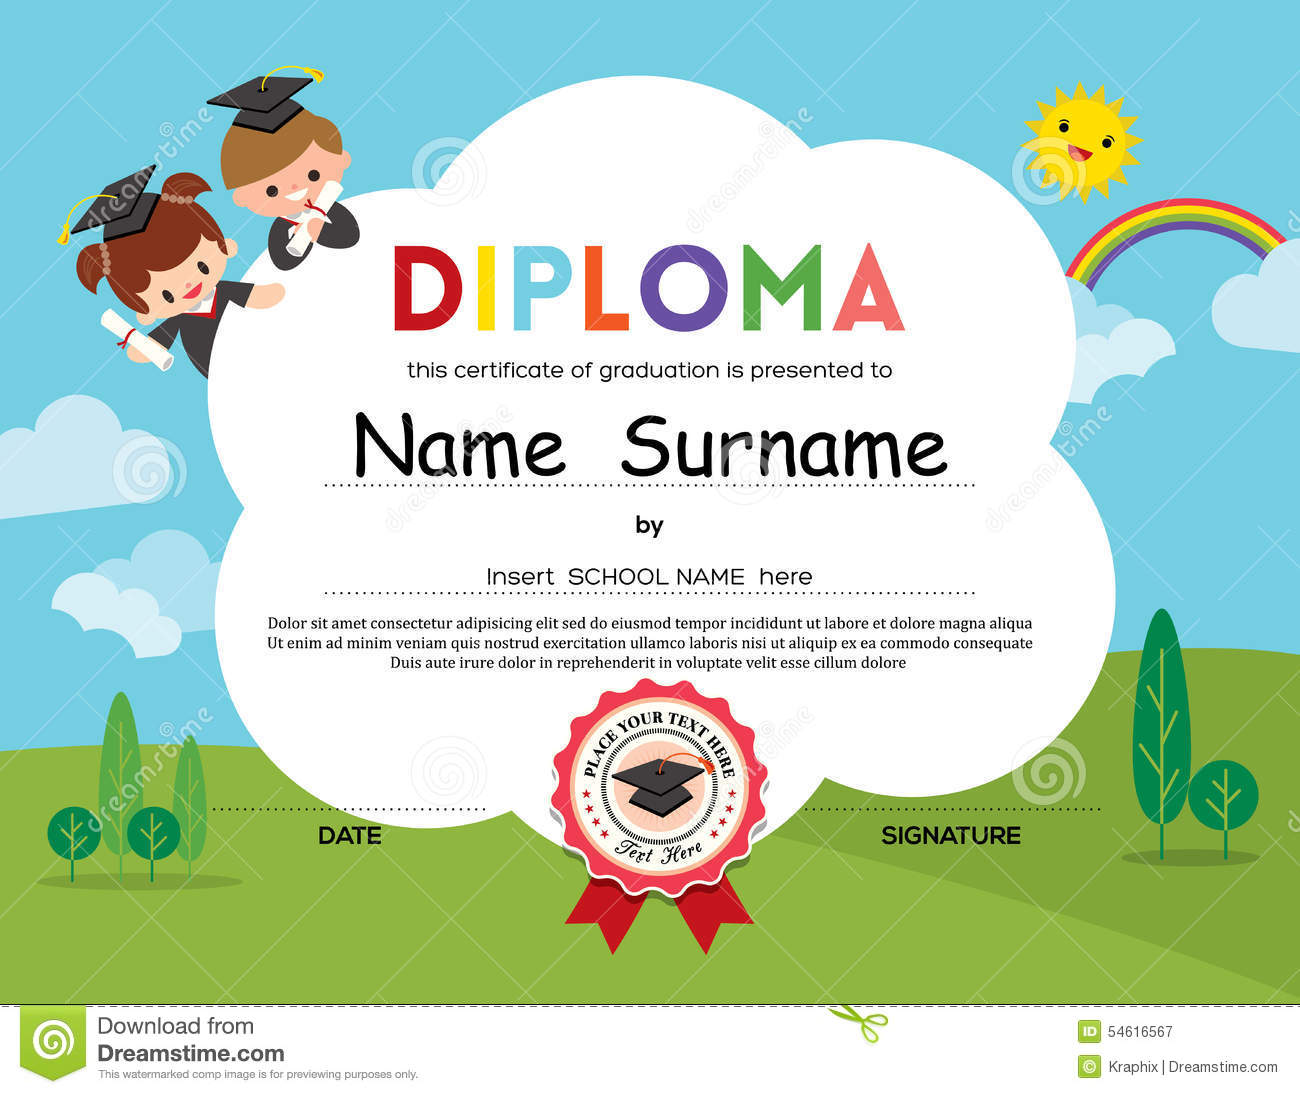 Certificate kids diploma kindergarten template layout space bac certificate kids diploma kindergarten template layout space bac vector illustration cartoondealer 56564020 yelopaper Image collections